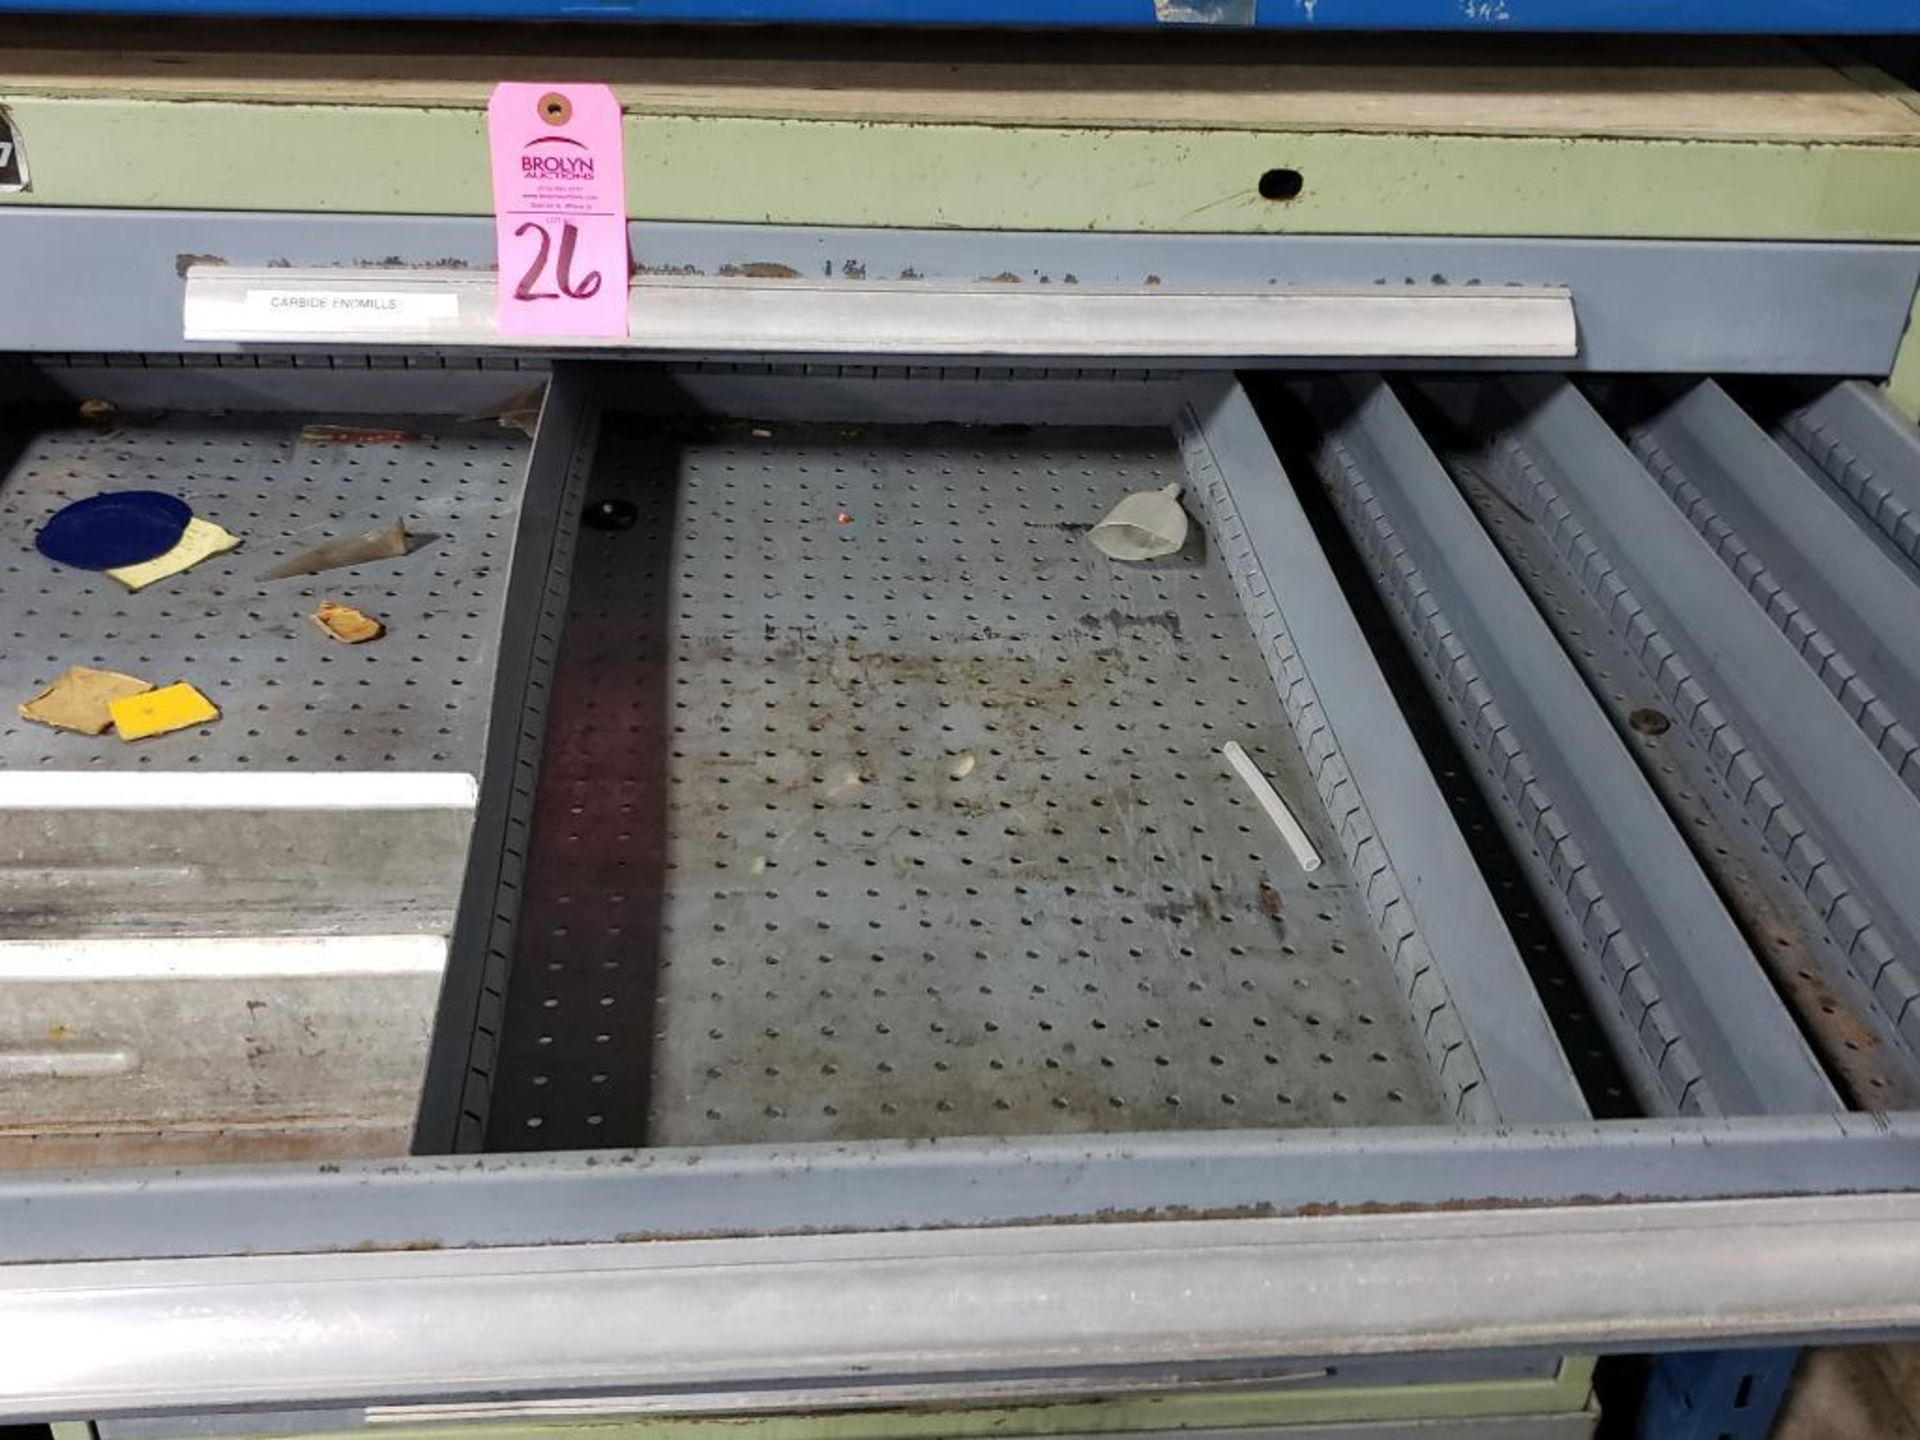 Lot 26 - 7 drawer Bott Waterloo tool cabinet on casters. Overall dimensions 48Tx44.5Wx30D.